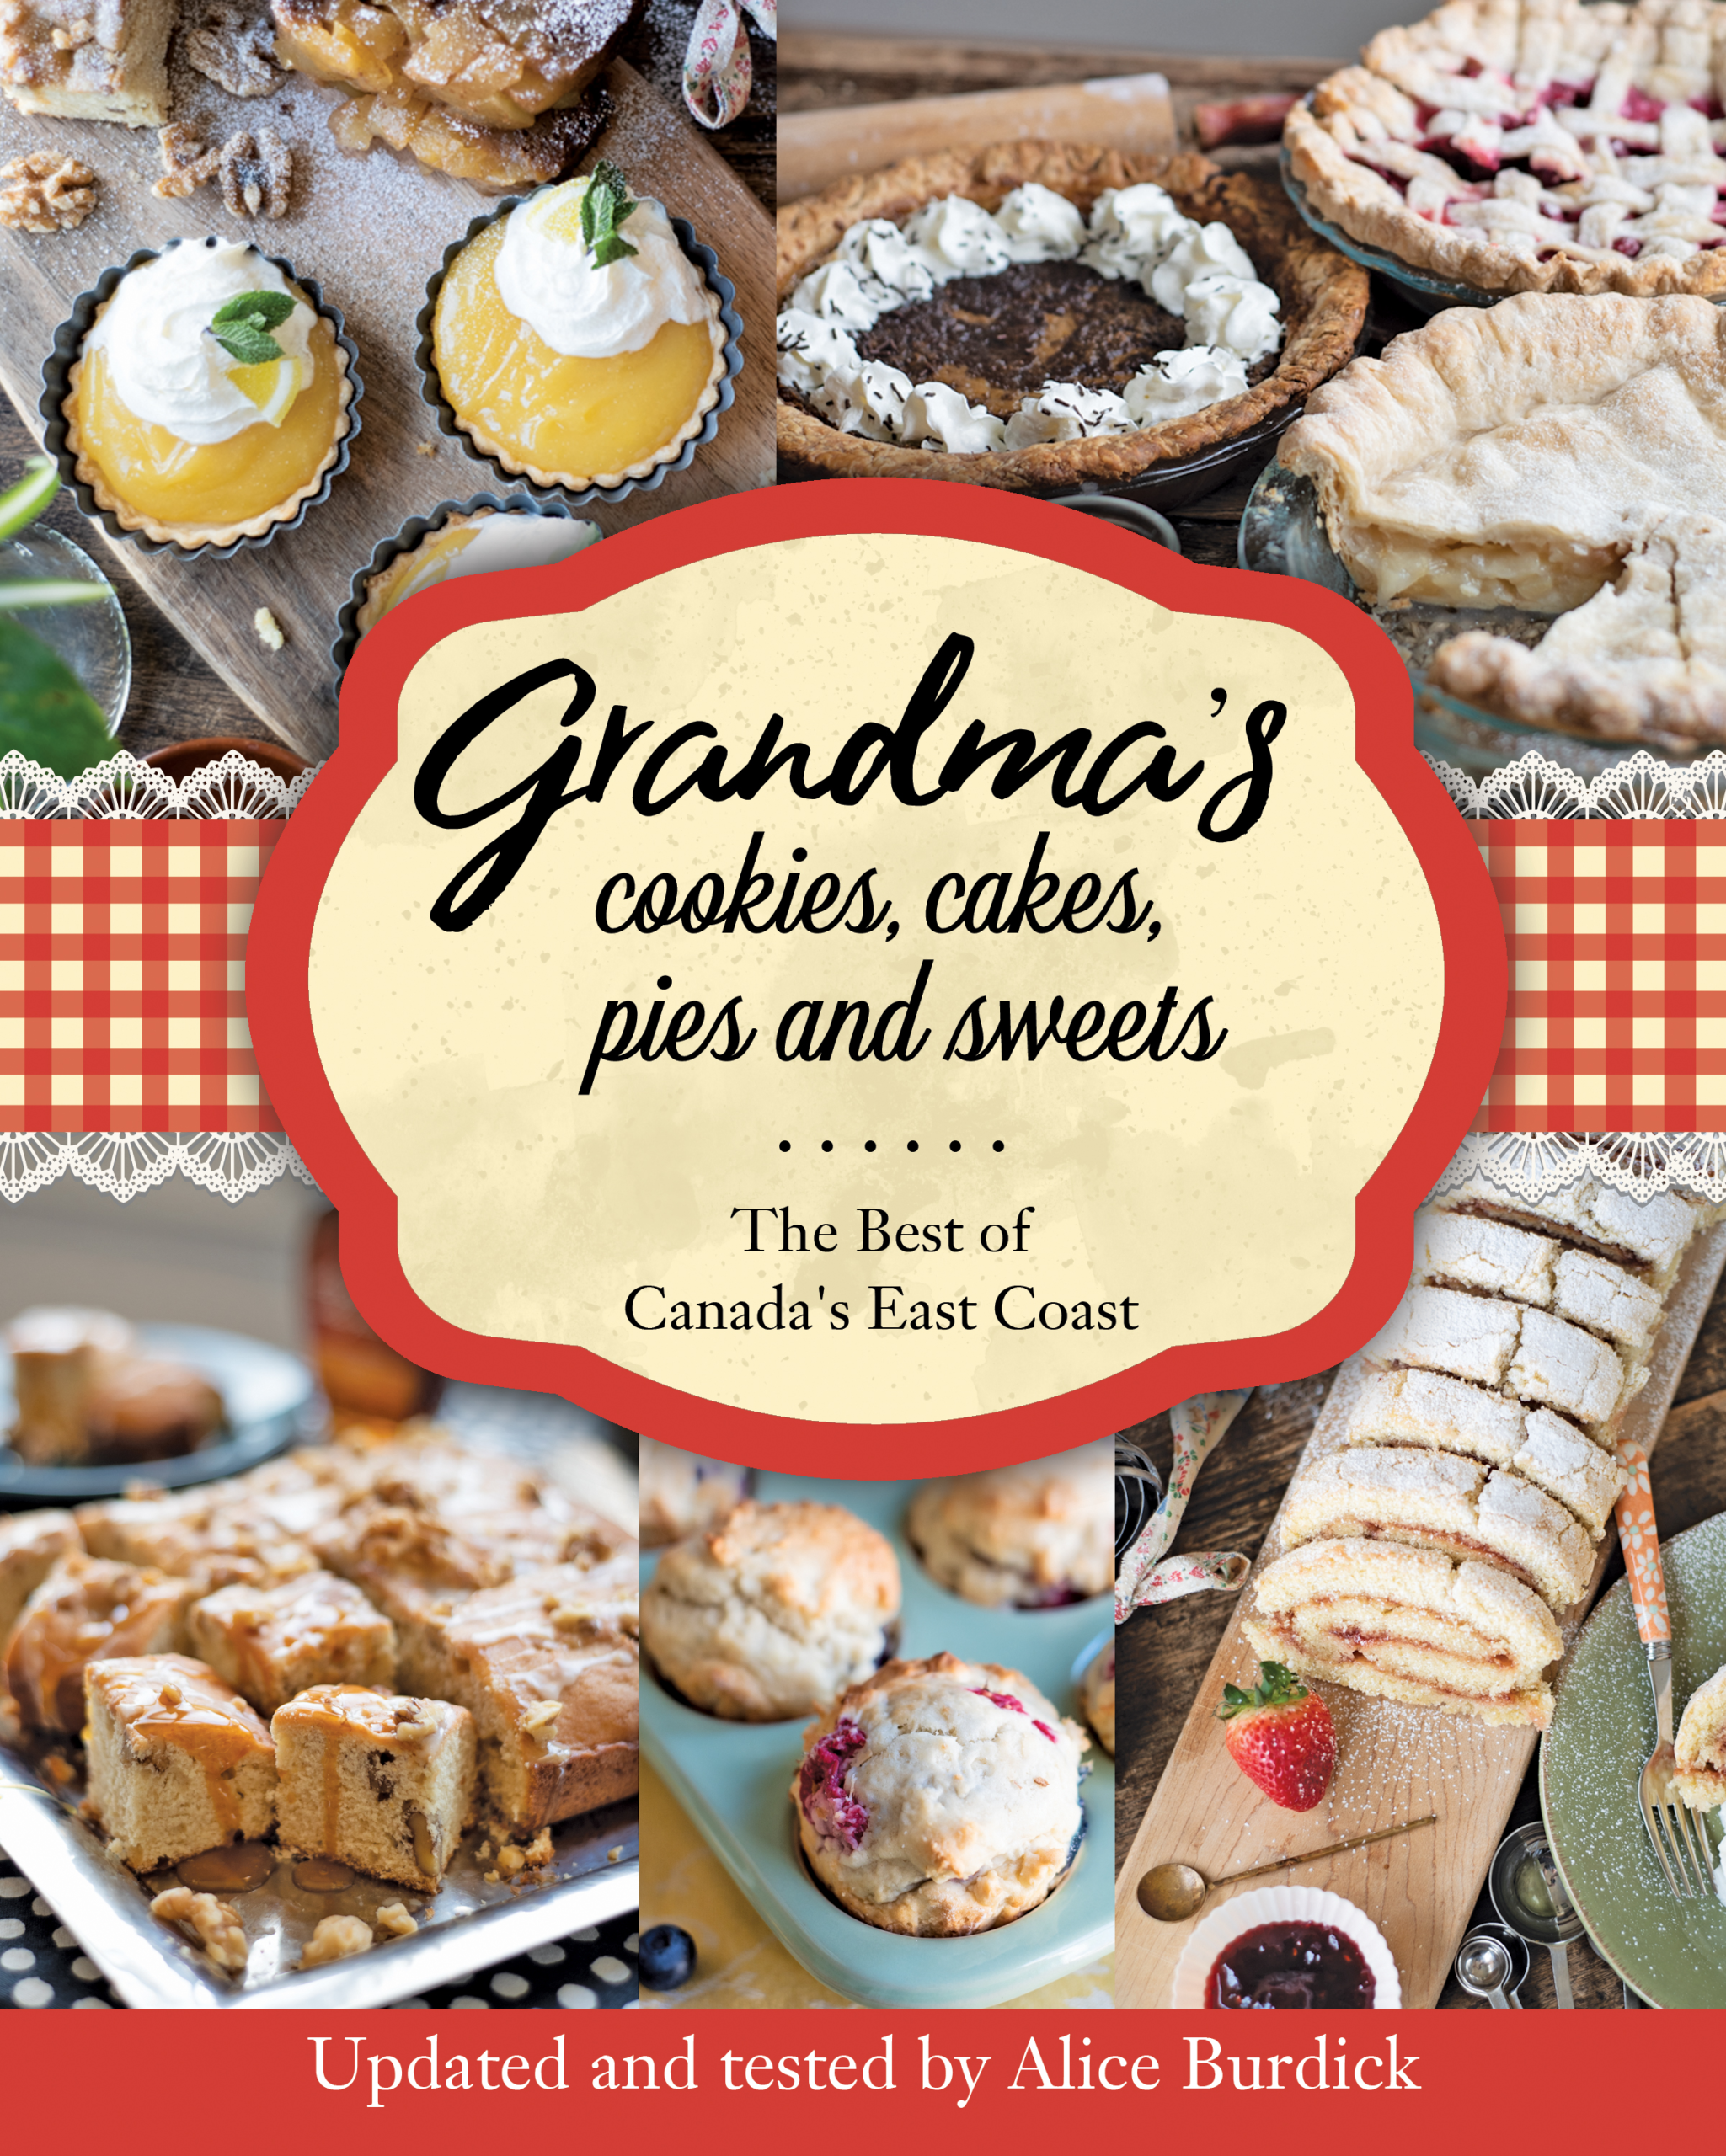 Grandma's Cookies, Cakes, Pies and Sweets